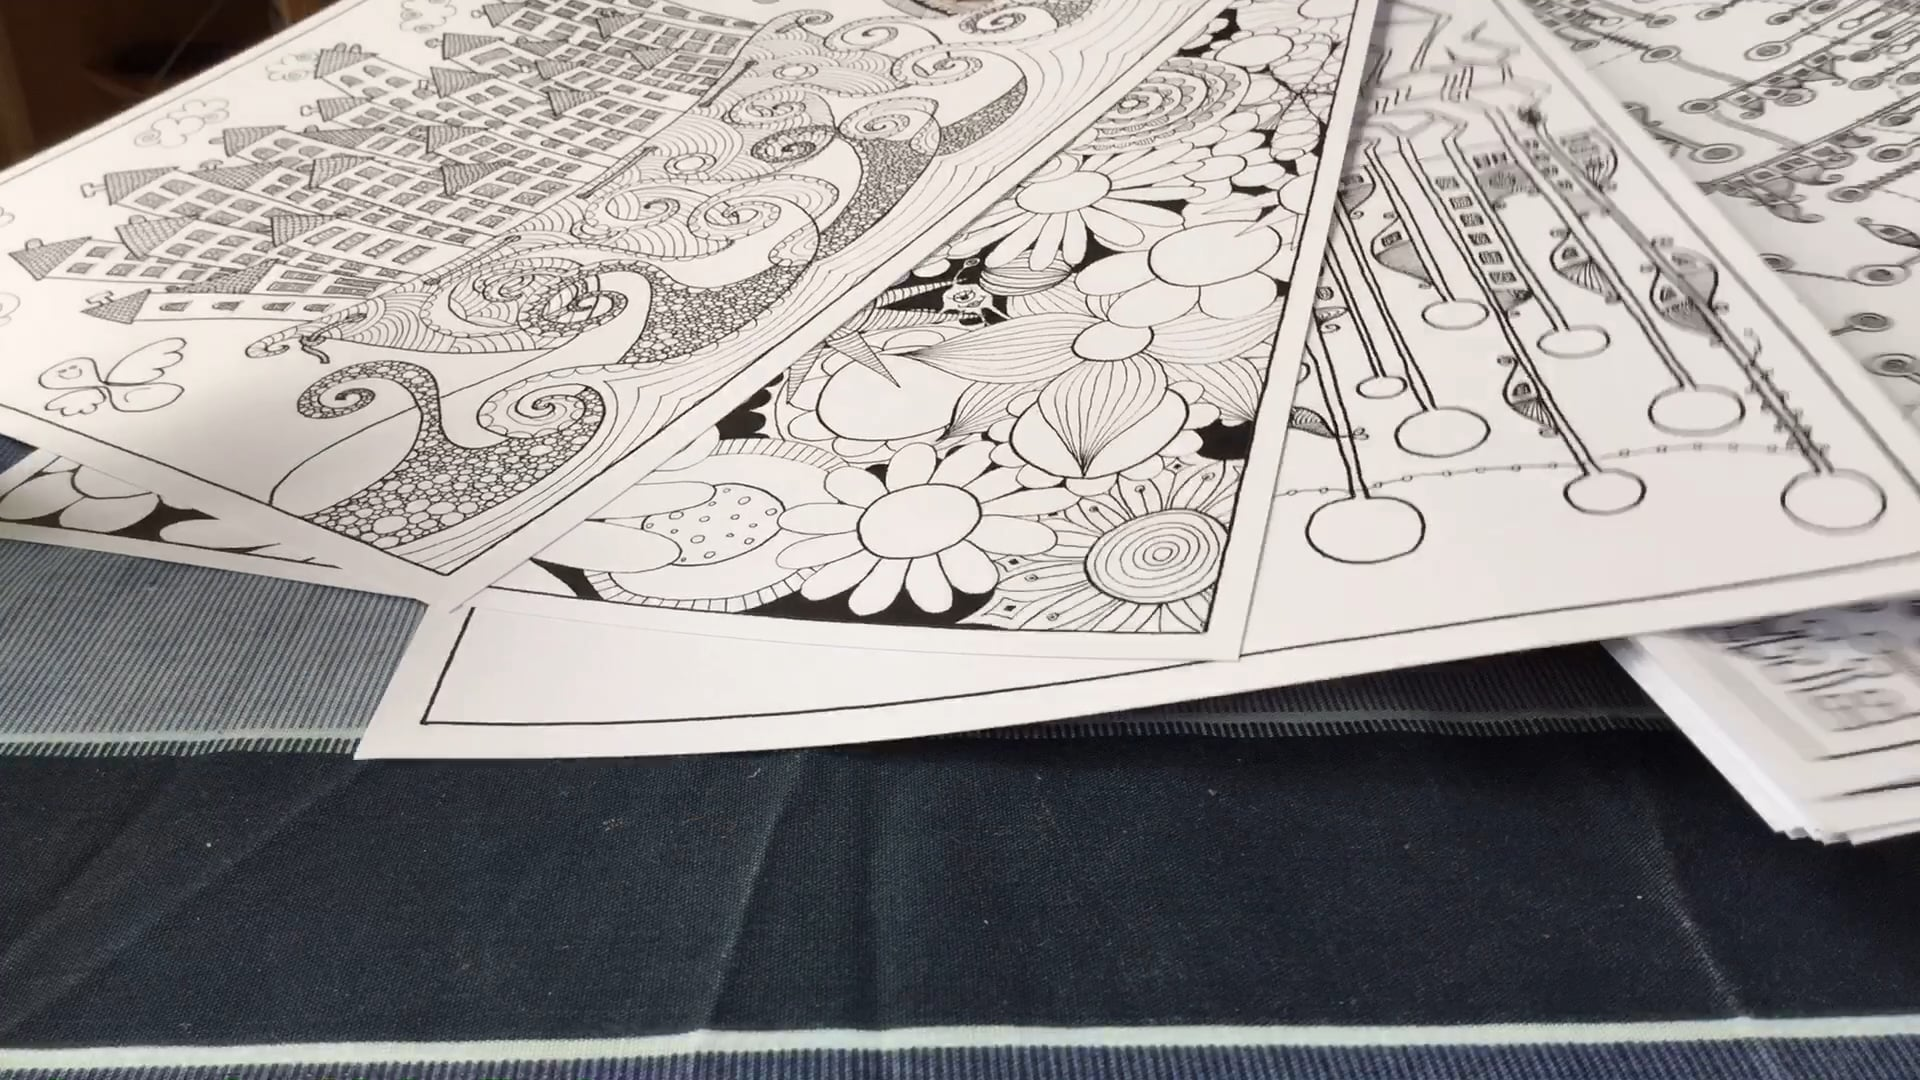 Colouring pages got to be real